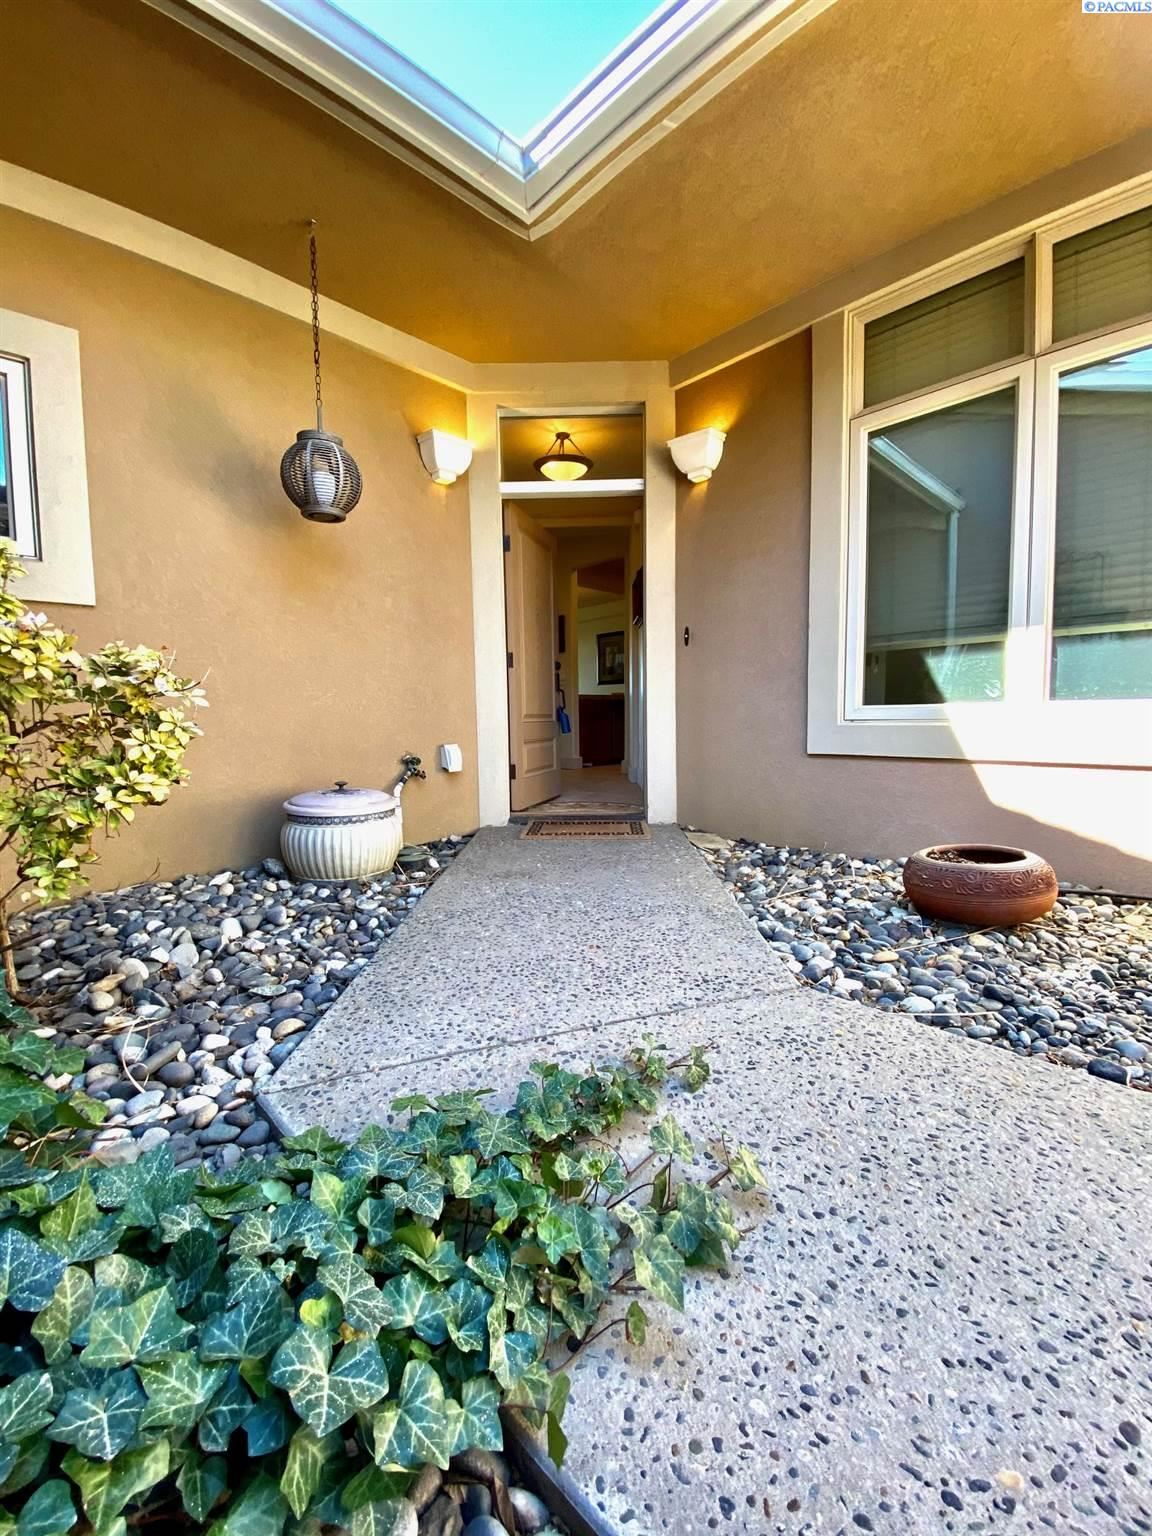 Photo of 463 Columbia Point Dr, Richland, WA 99352 (MLS # 252861)